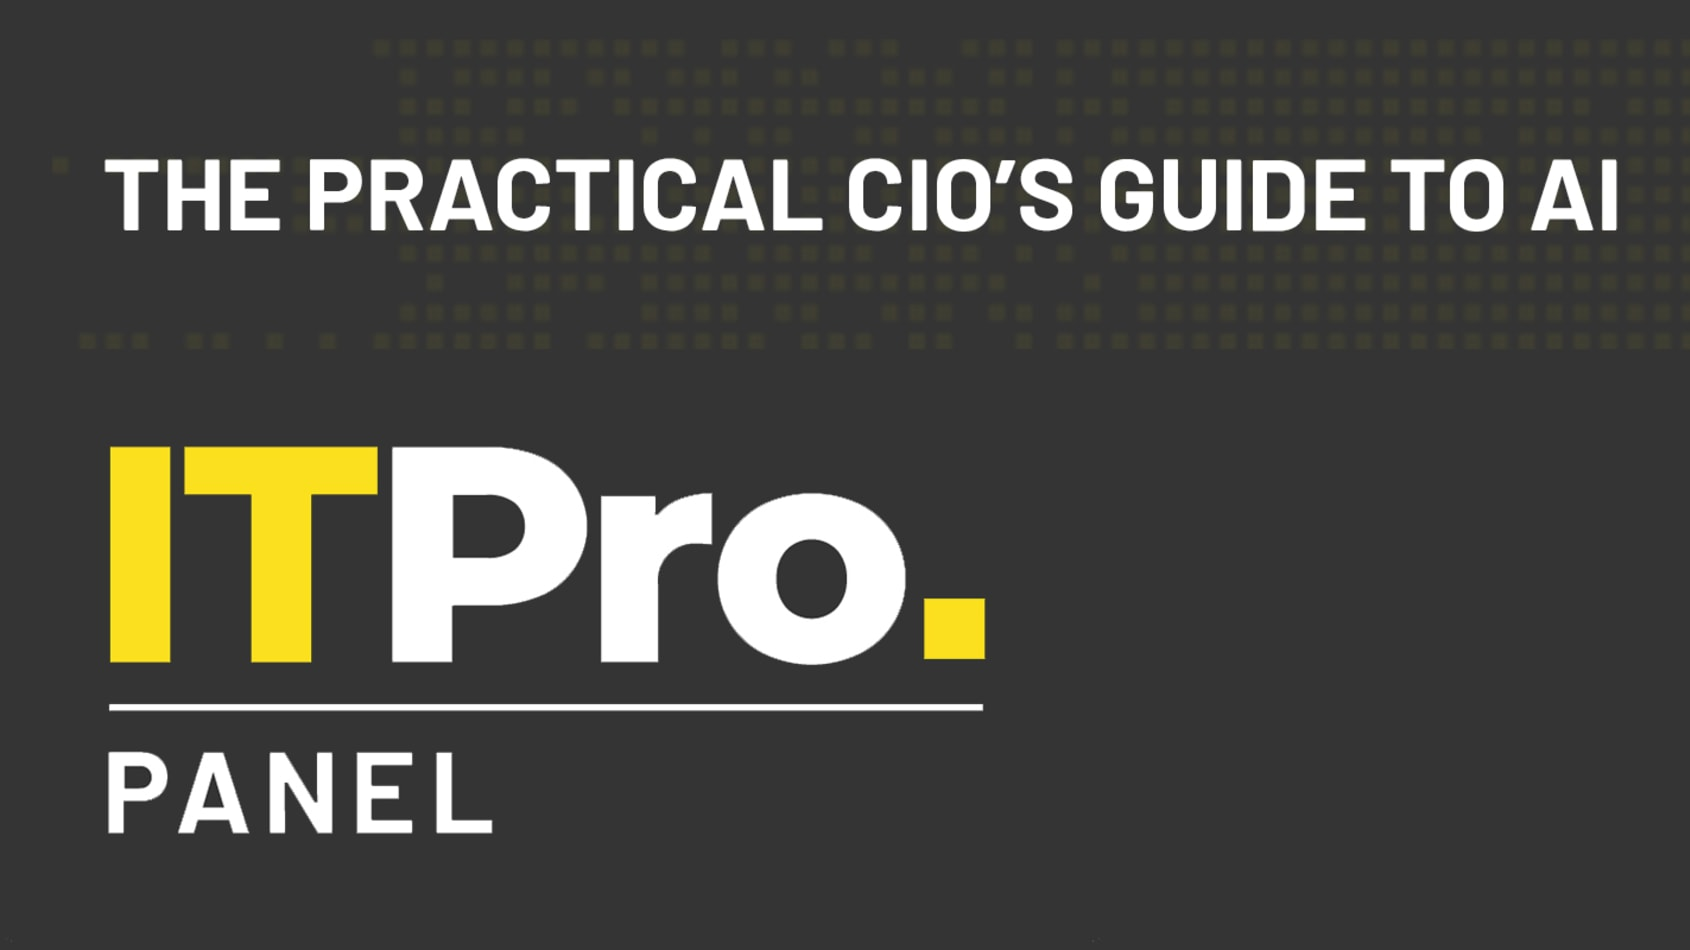 IT Pro Panel: The practical CIO's guide to AI